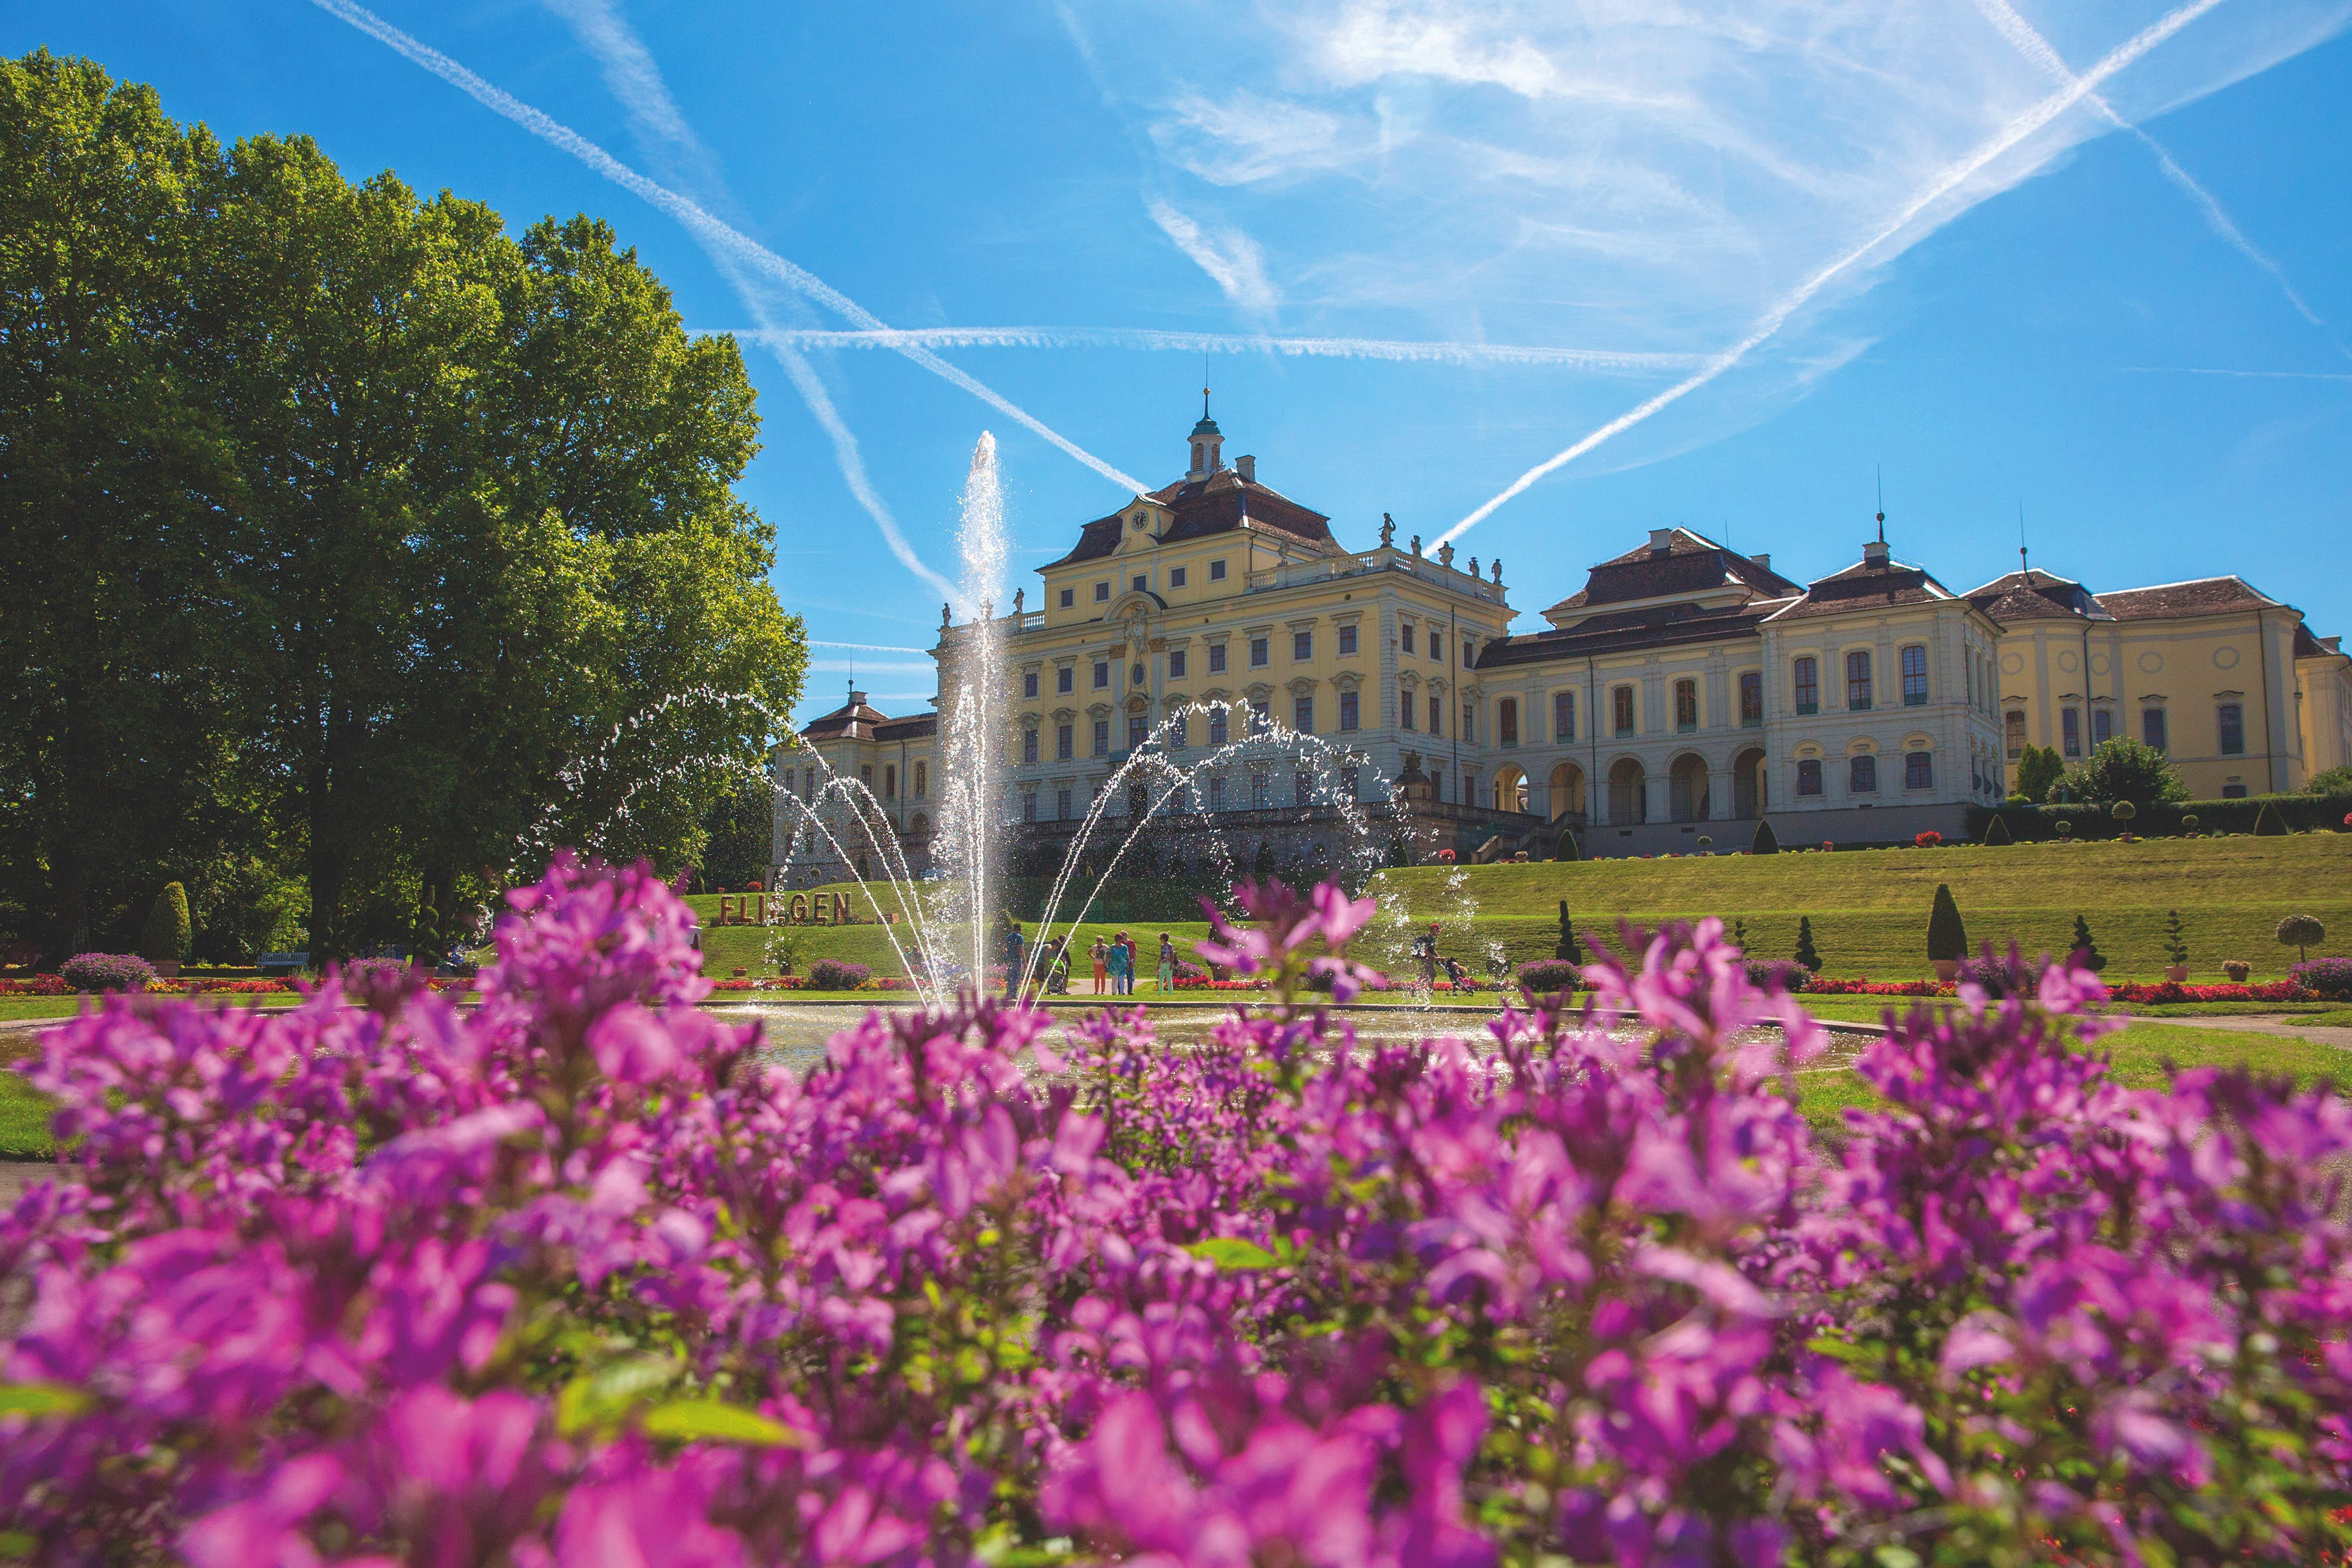 Flowers blooming outside Residenzschloss, Ludwigsburg, Germany. A fountain is visible, as are people walking in the distance.